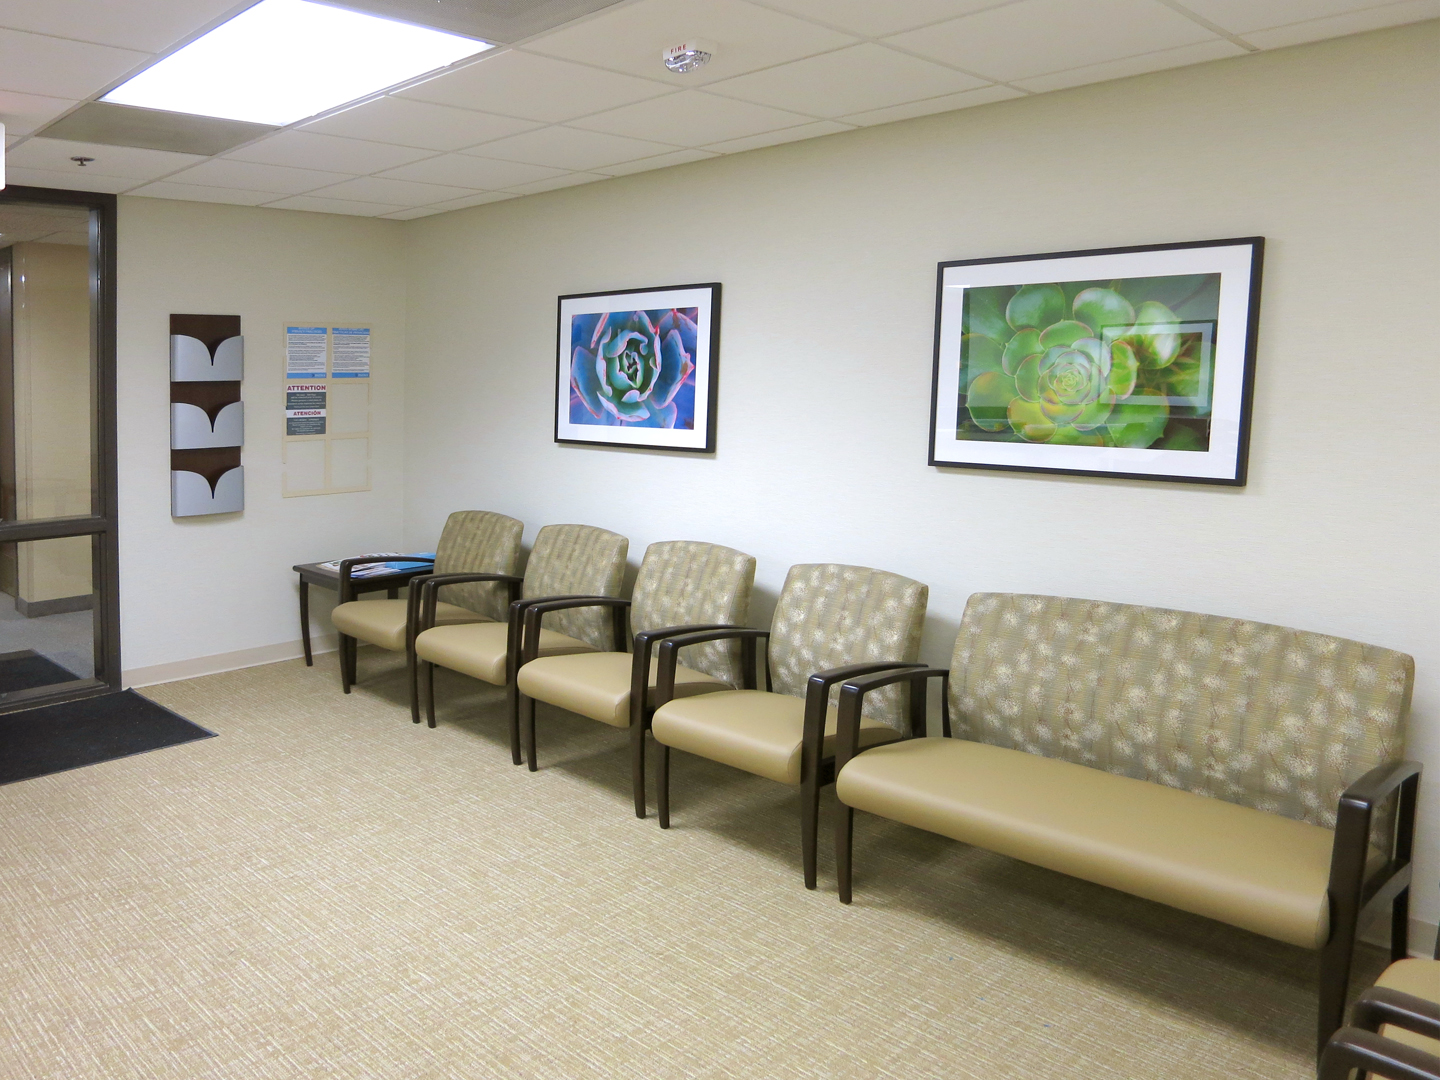 Artwork installed in a waiting area for one of Inova's locations in Fair Oaks, Virginia.